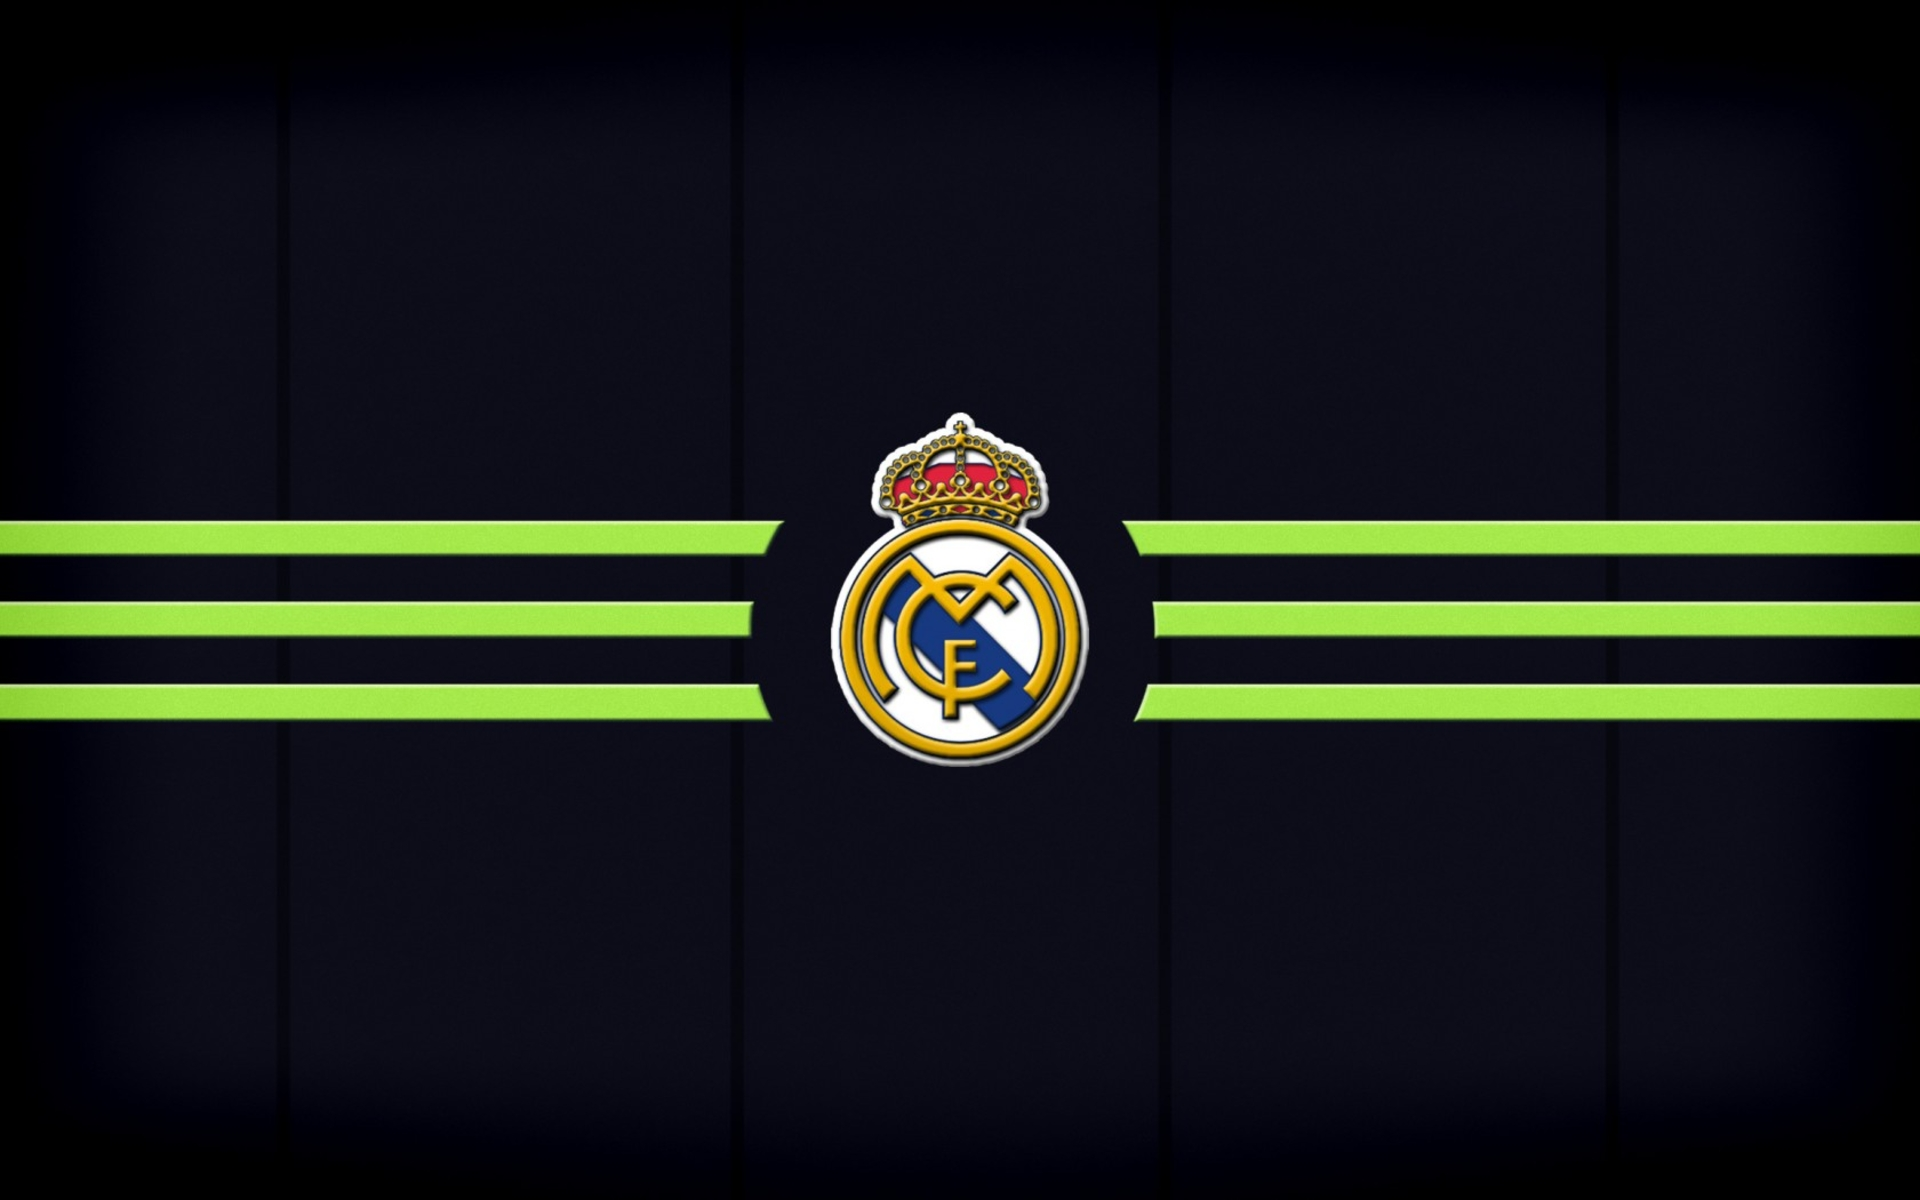 AMB-provides-you-the-latest-Real-Madrid-HD-We-update-the-latest-collection-of-wallpaper-wp3402326